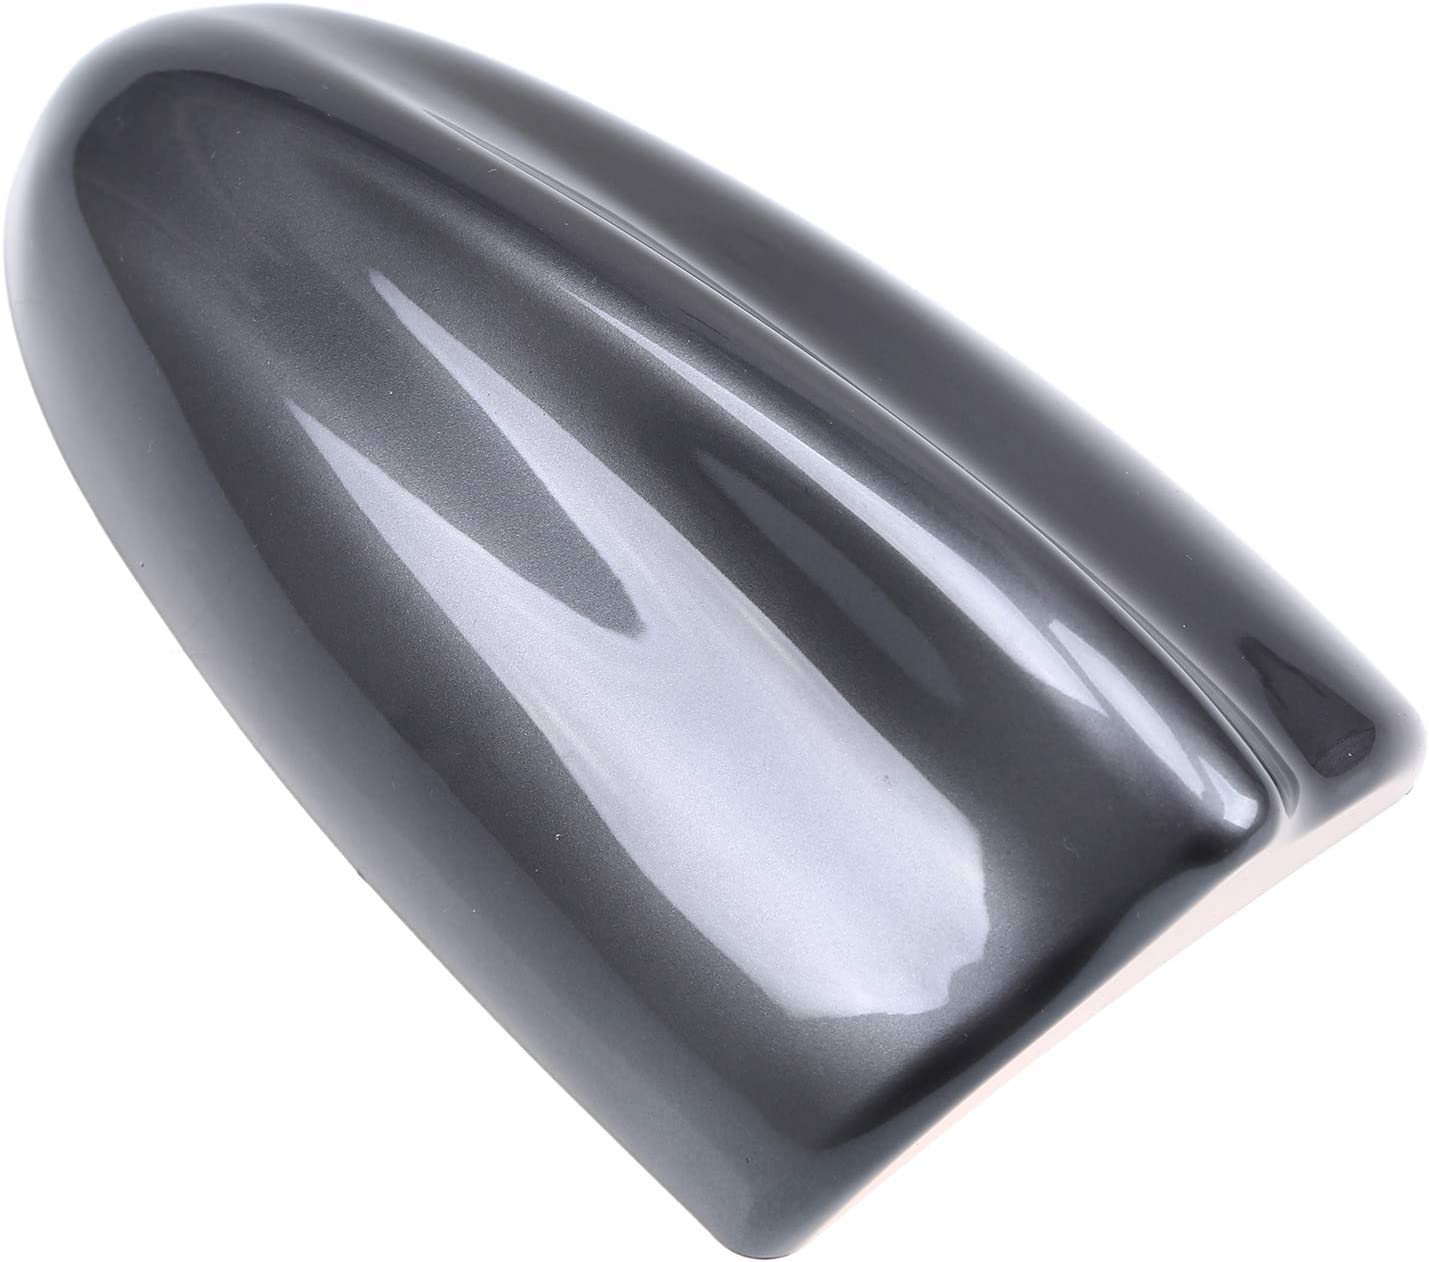 Possbay Universal Car Shark Fin Antenna AM//FM Radio Signal Roof Aerial for Auto SUV Truck Offroad with Adhesive Base Waterproof